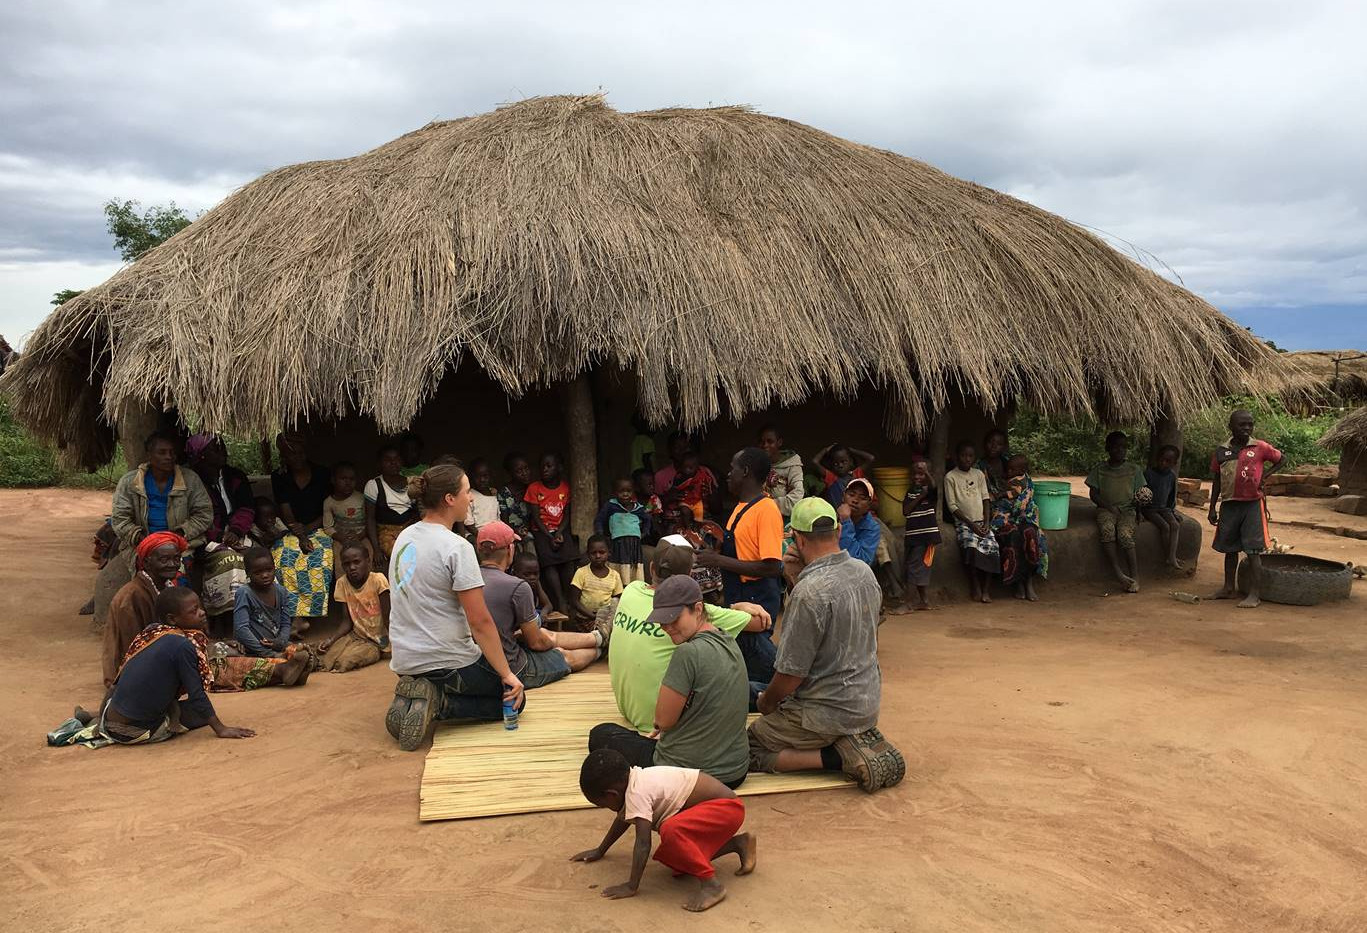 meeting people in the nearby villages